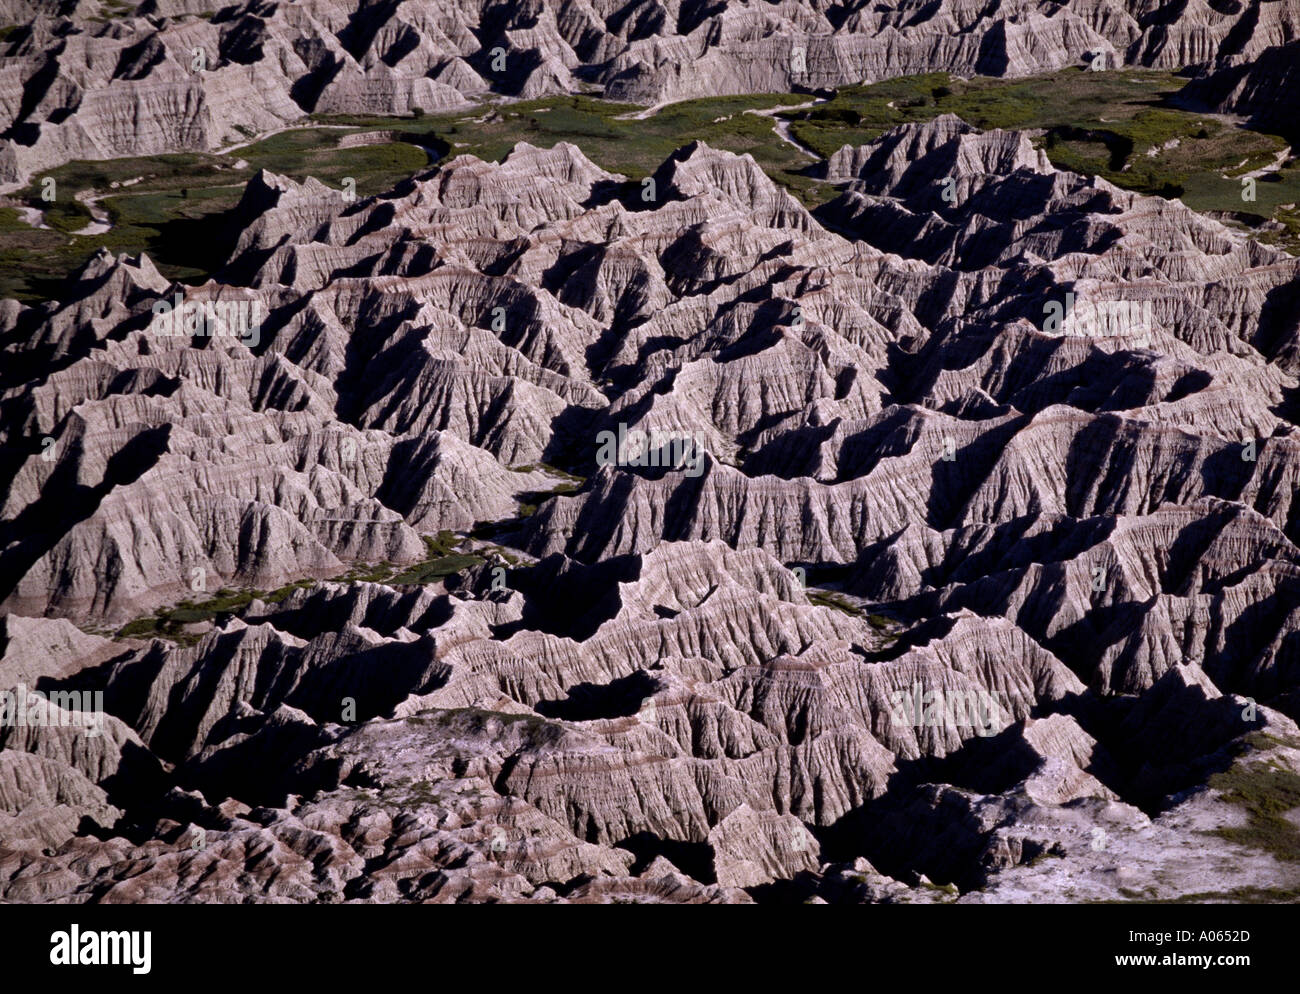 Aerial view of eroded formations Badlands National Park South Dakota USA Stock Photo